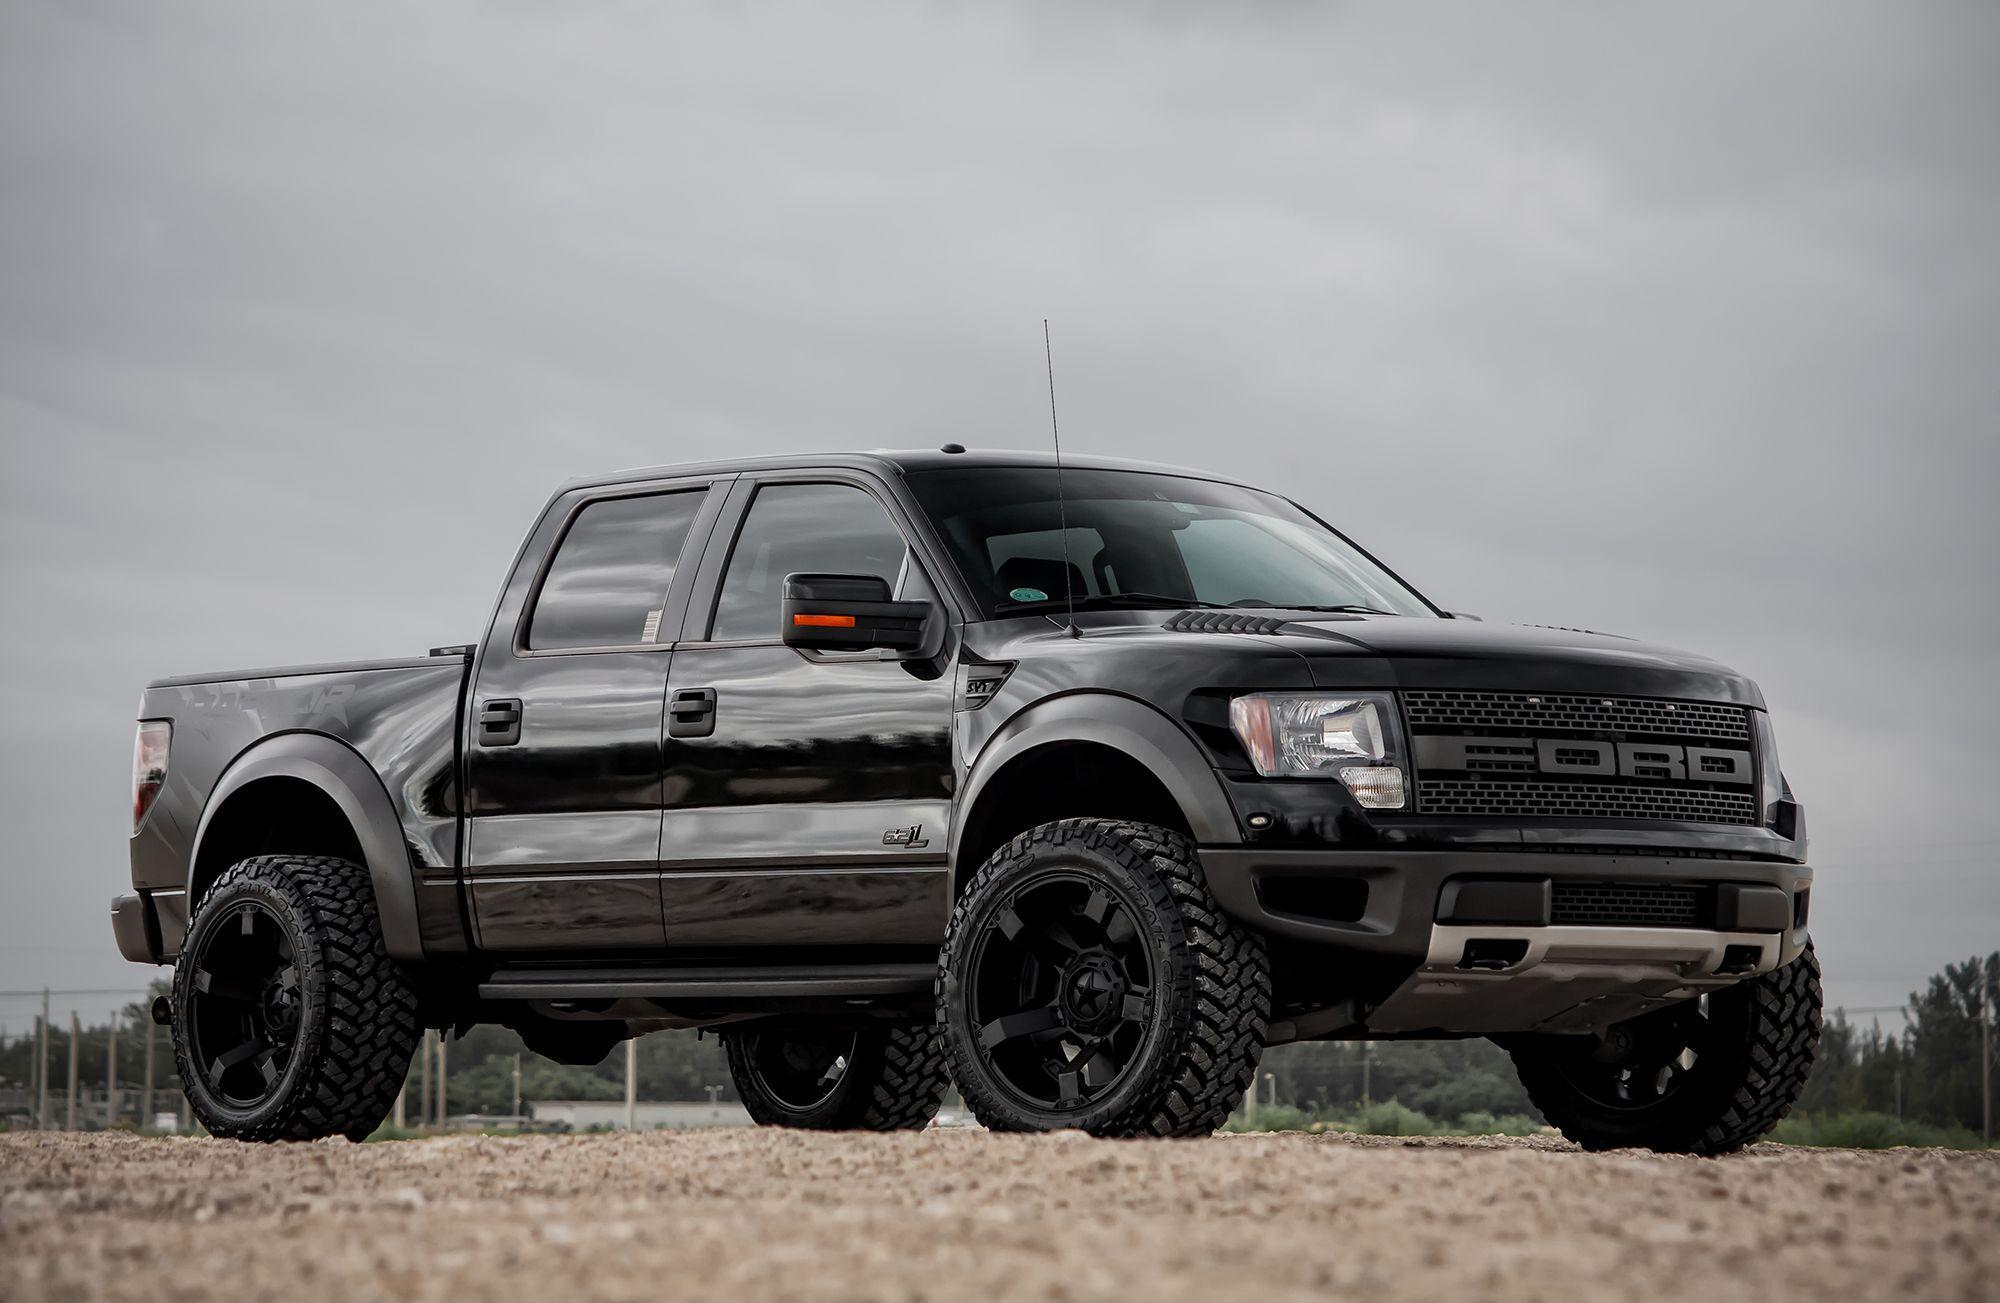 wallpaper ford raptor - photo #3